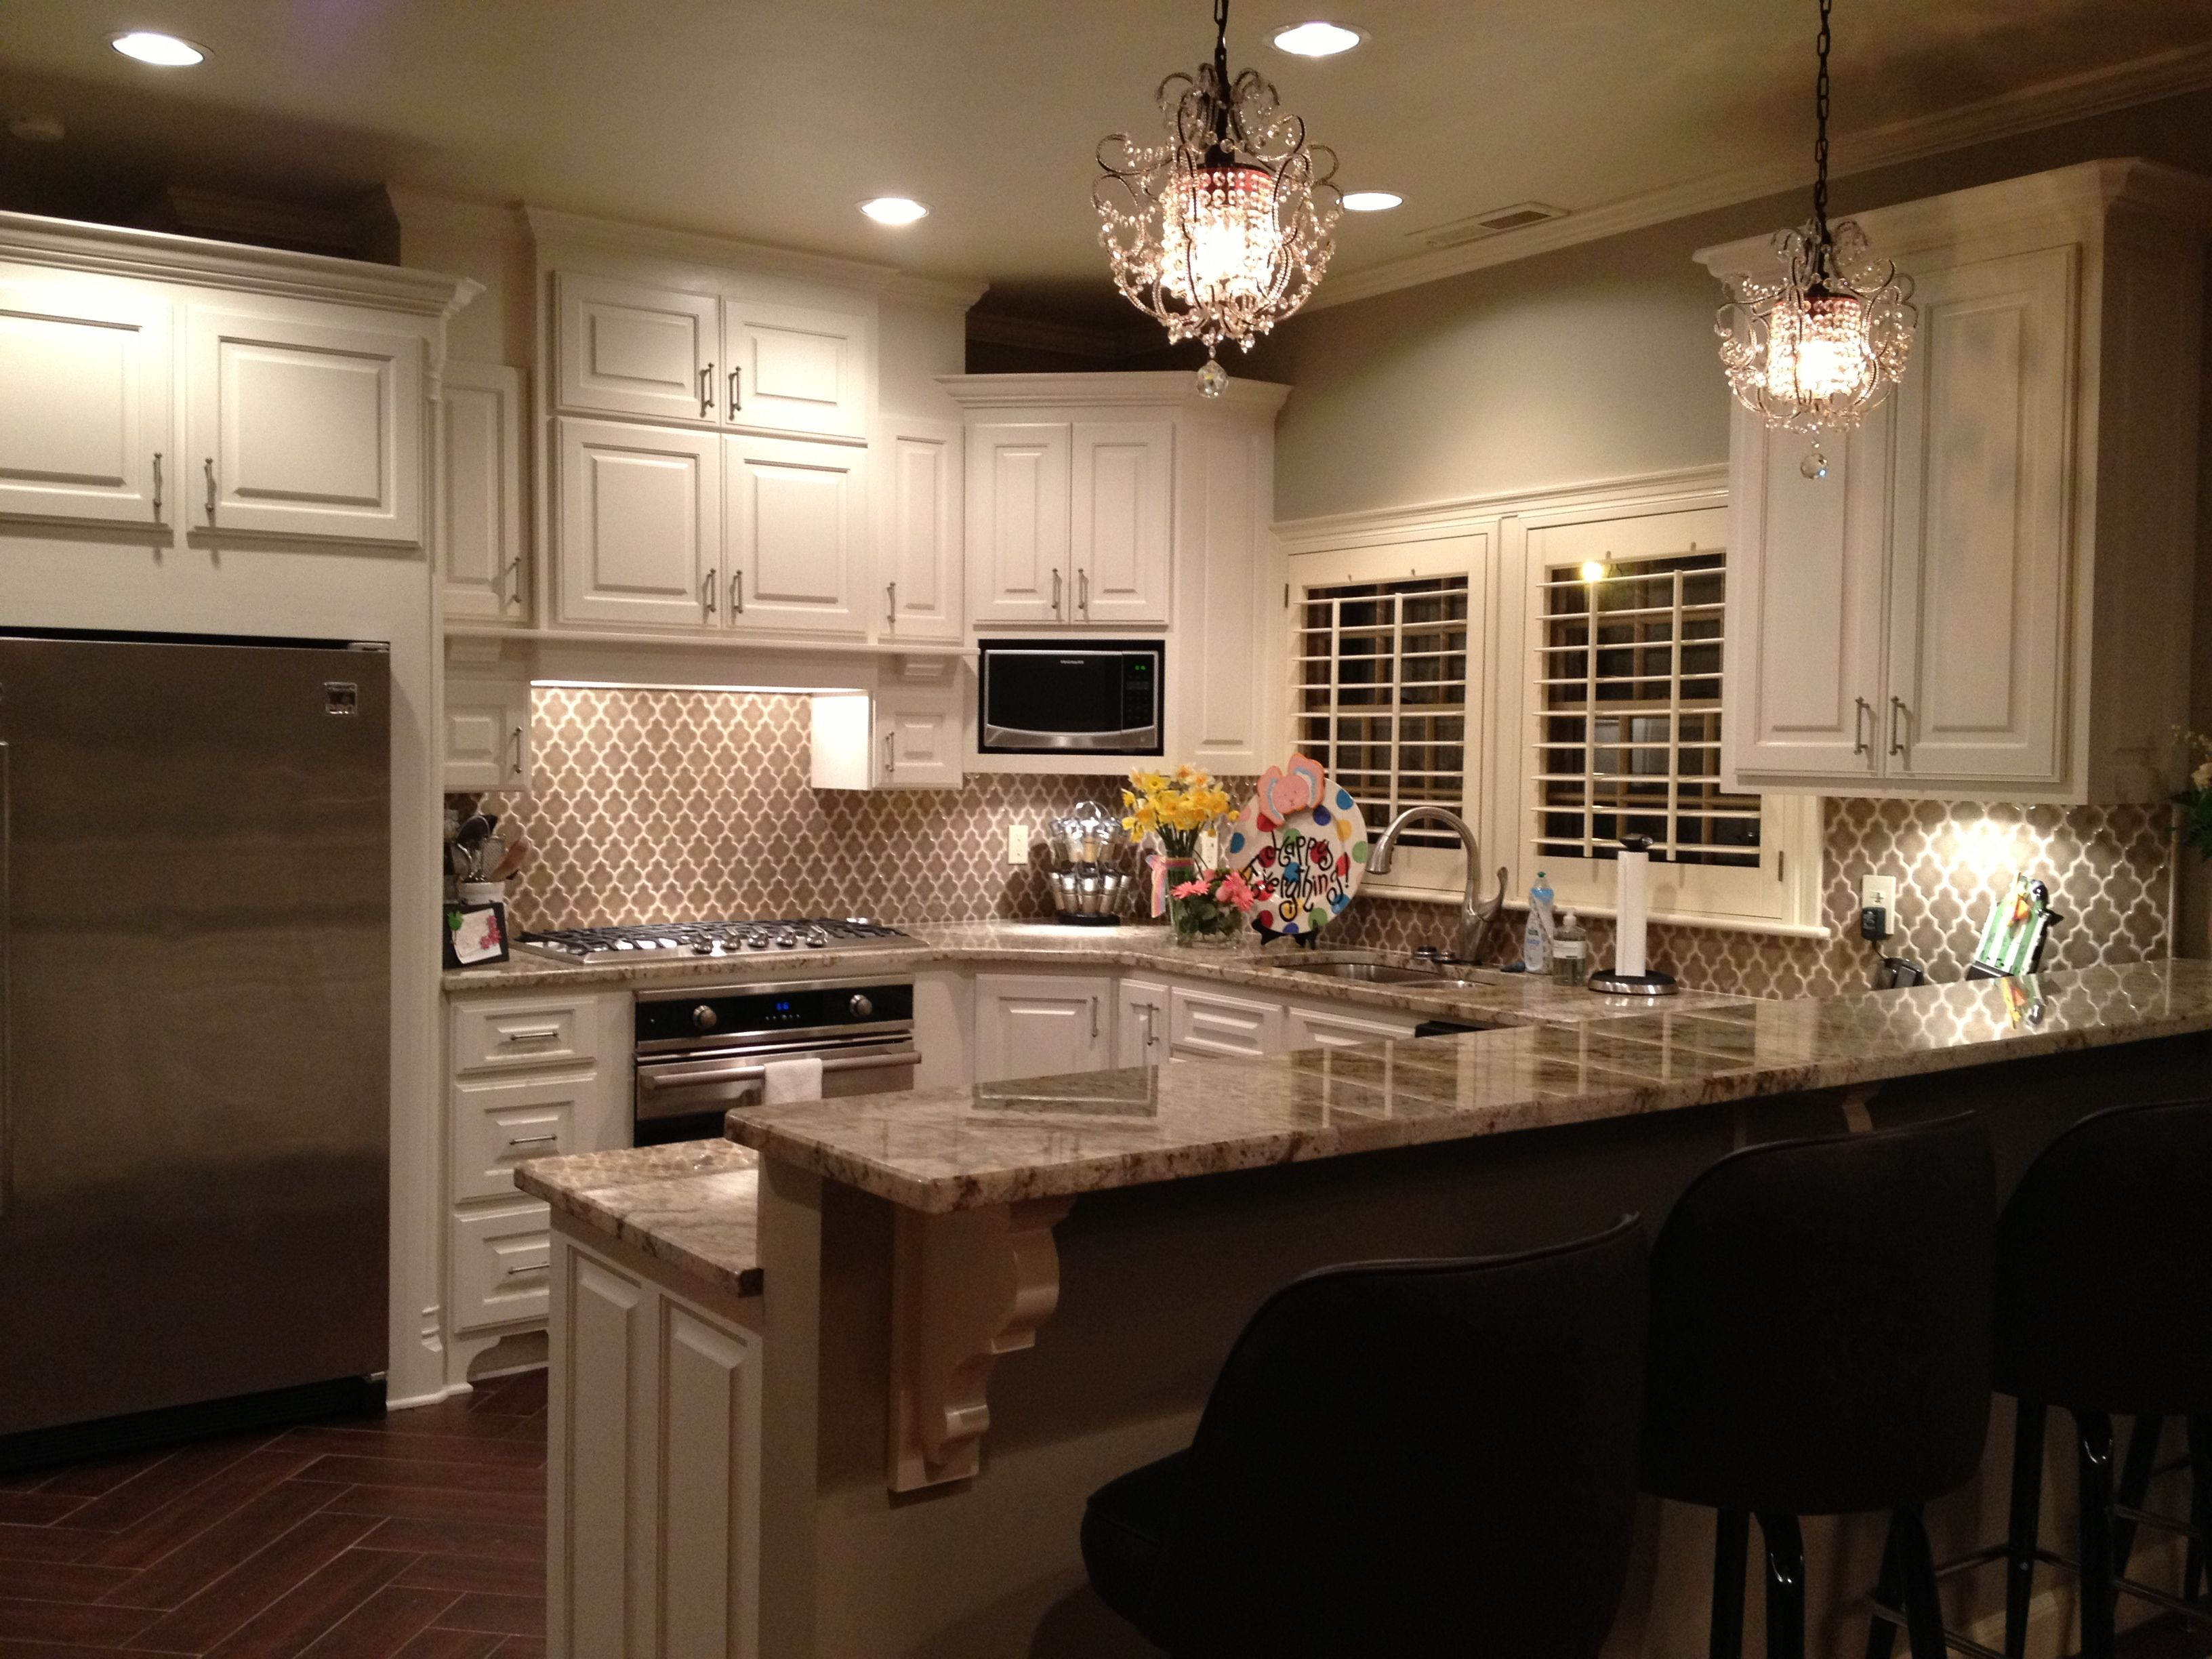 Walker zanger ashbury vibe backsplash, wood grain tile floors ...